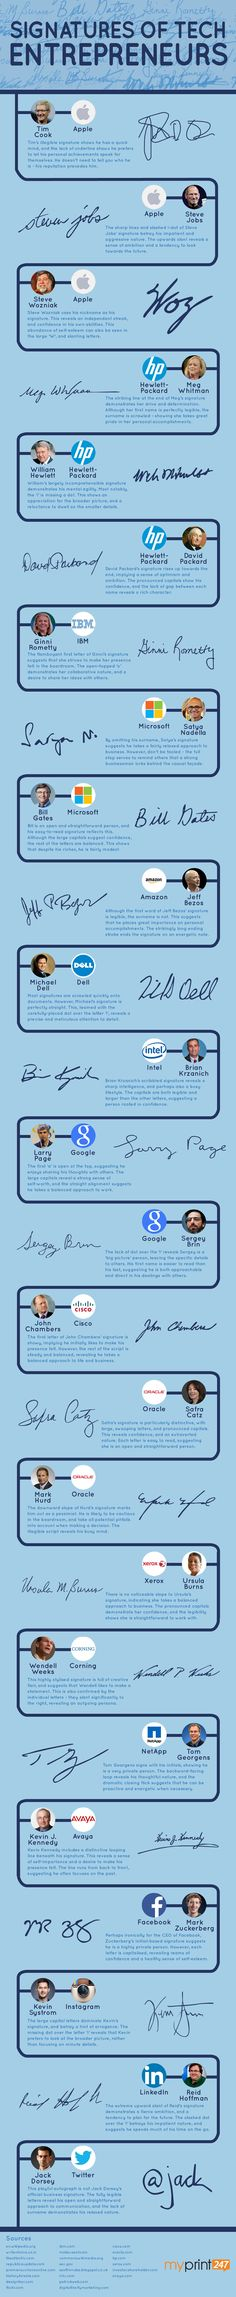 The Signatures of 25 Tech Titans and What They Say About Their Personalities